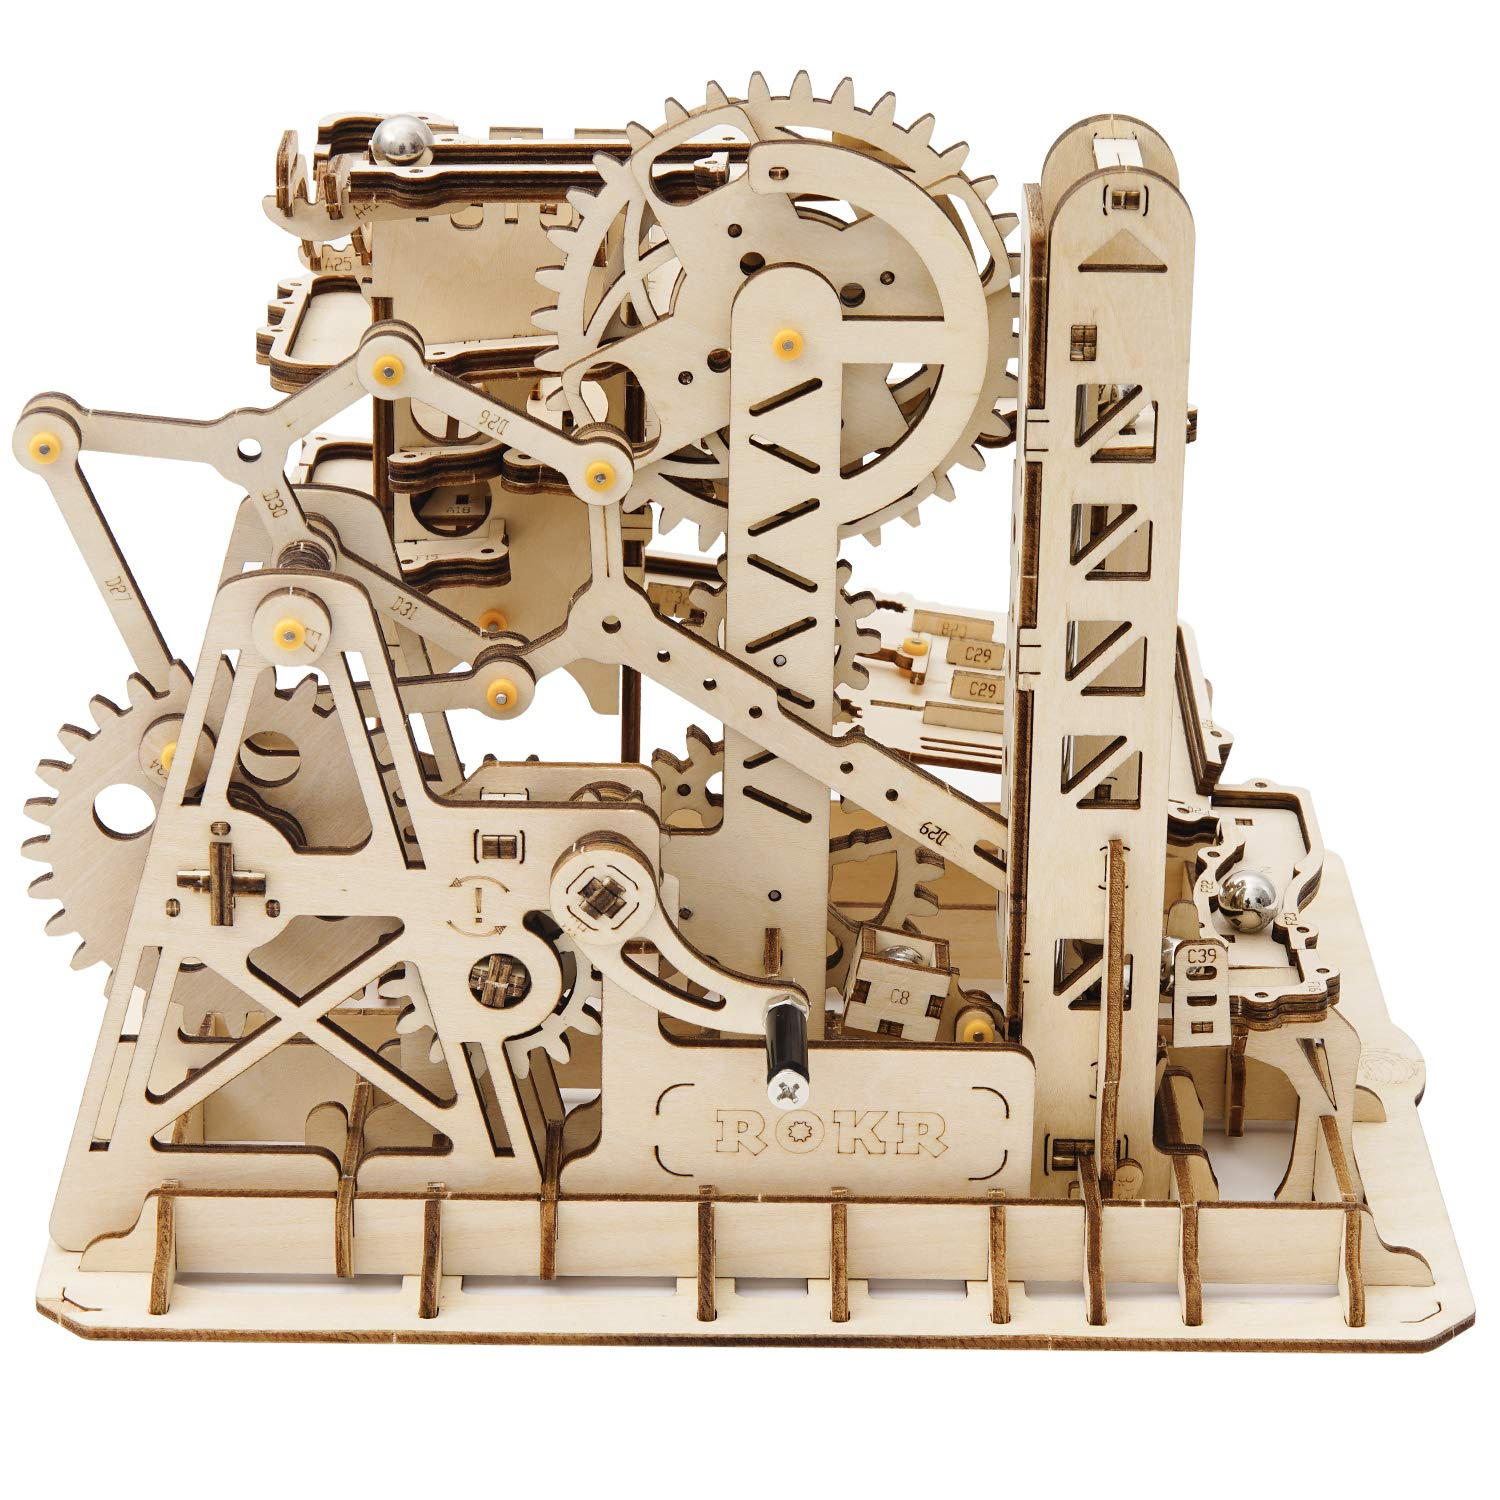 ROKR Mechanical Gears DIY Building Kit Mechanical Model Construction Kit with Balls for Teens and Adults Tower Coaster by ROKR